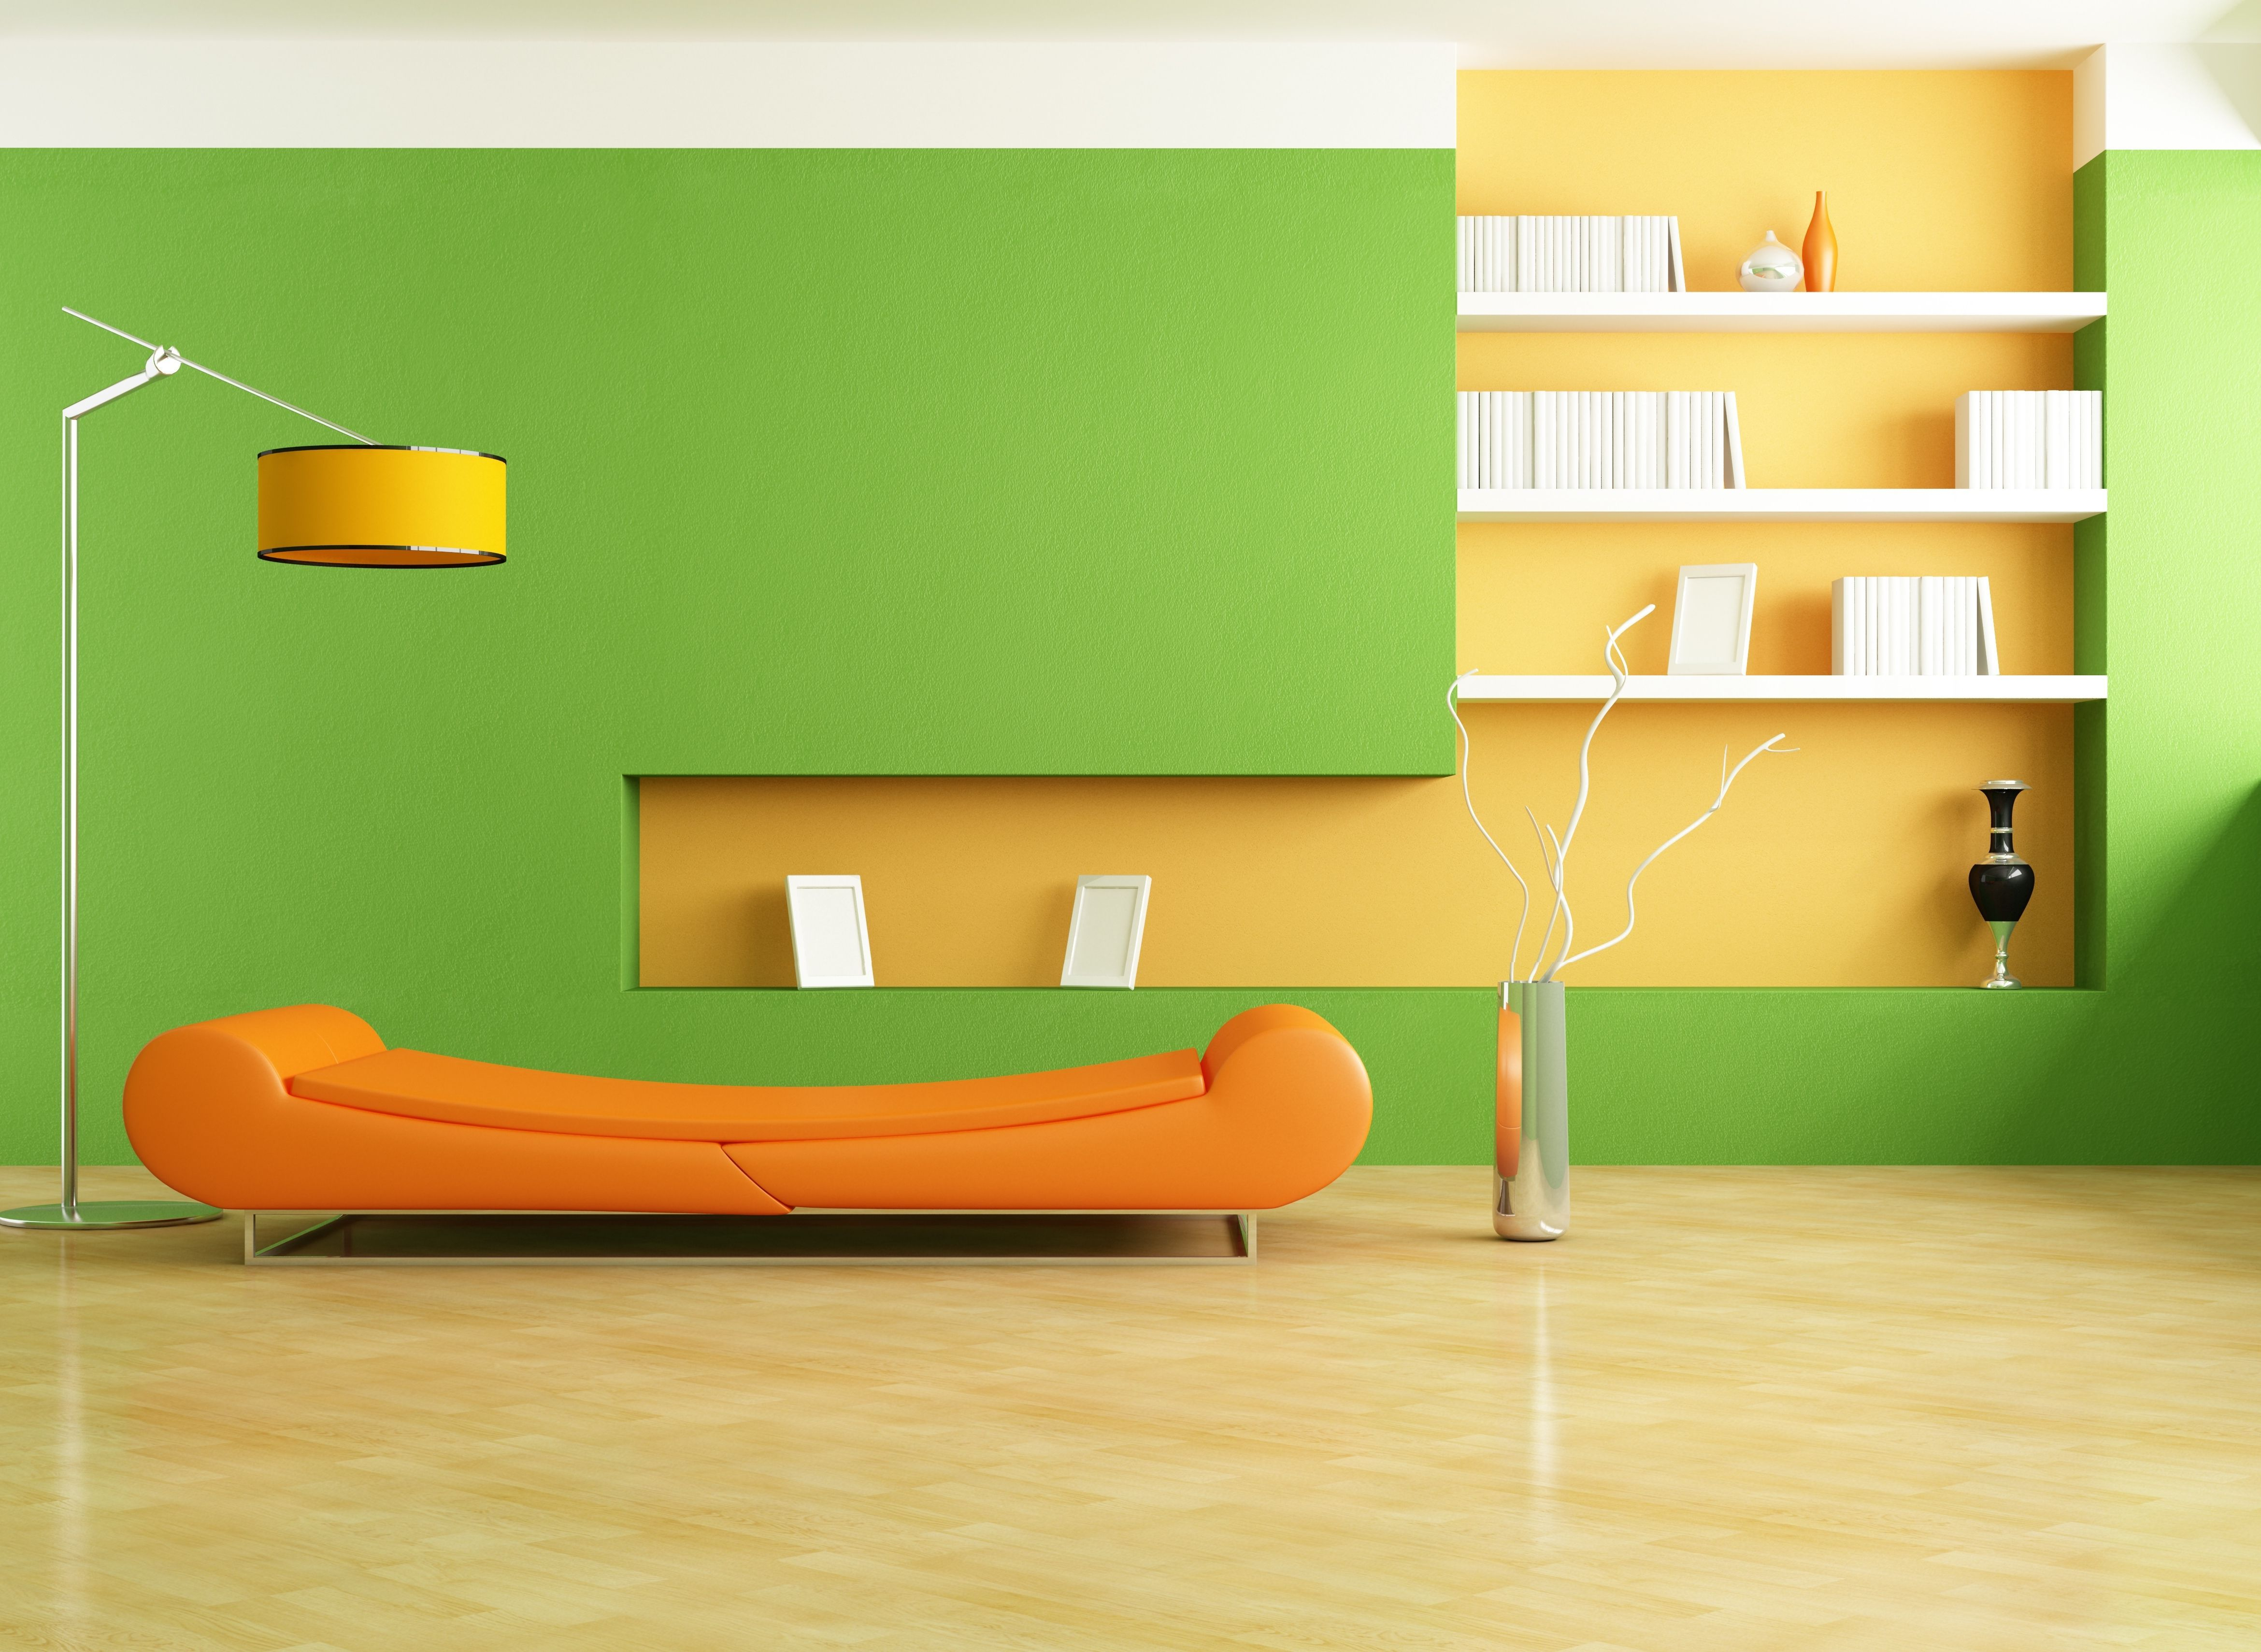 exquisite-long-flat-orange-couch-for-living-room-in-green-color ...